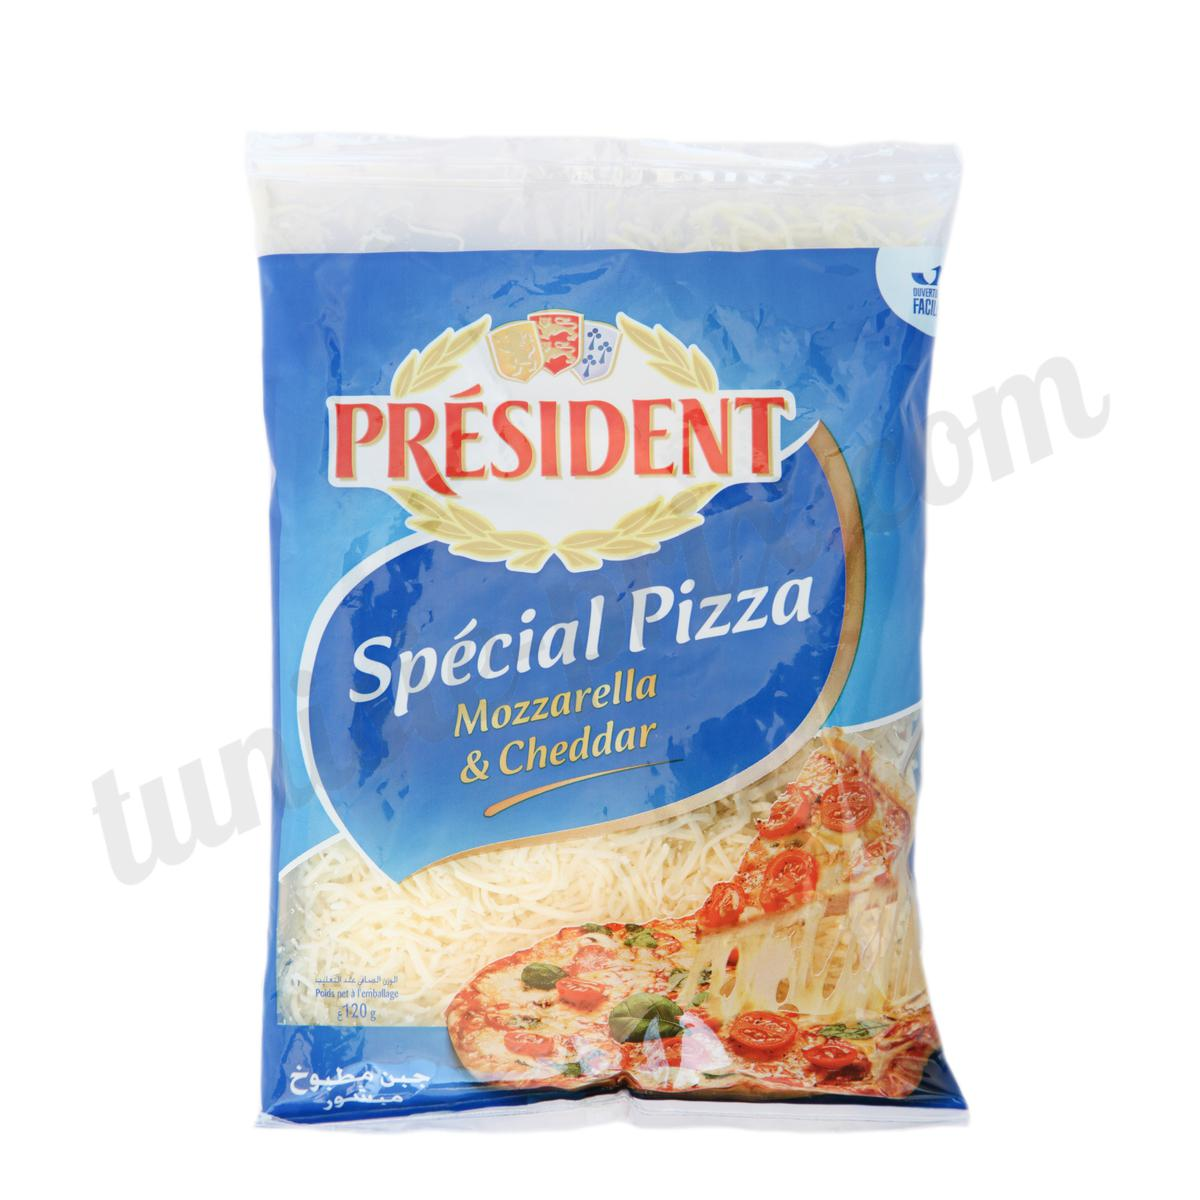 fromage r p sp cial pizza pr sident 120g tunisie